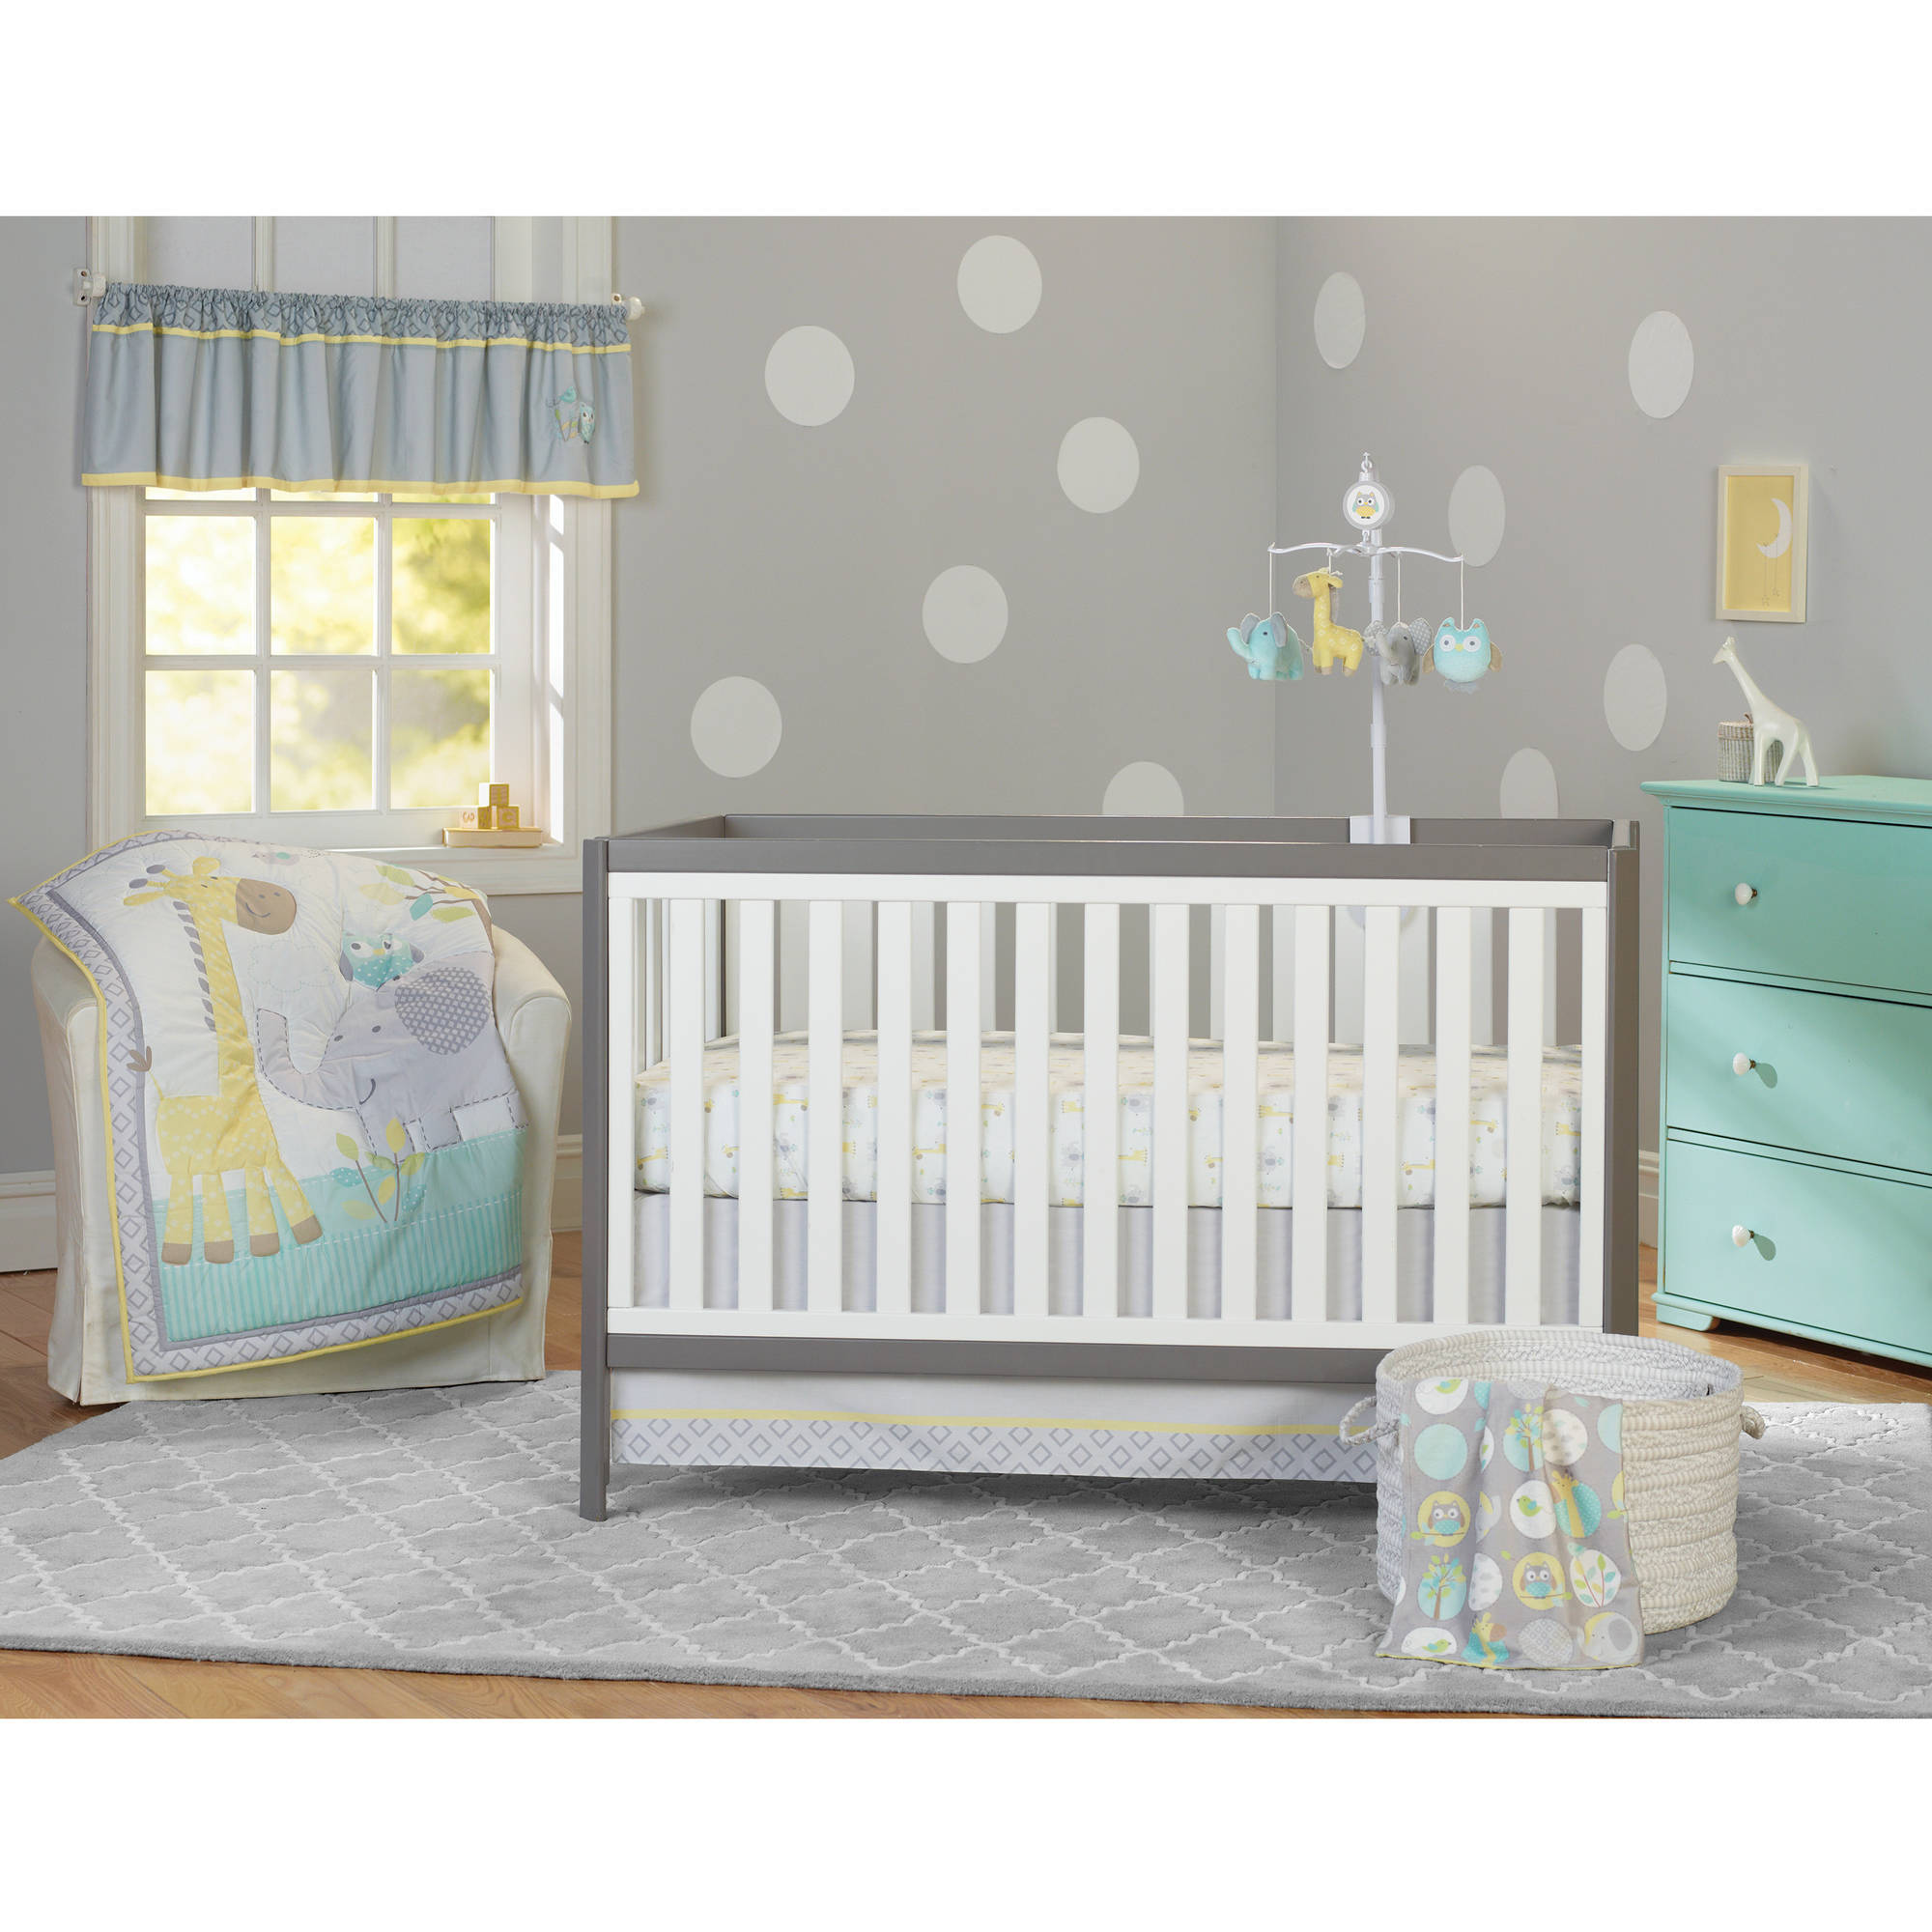 garanimals animal crackers 3-piece crib bedding set - walmart.com WBEHGBS